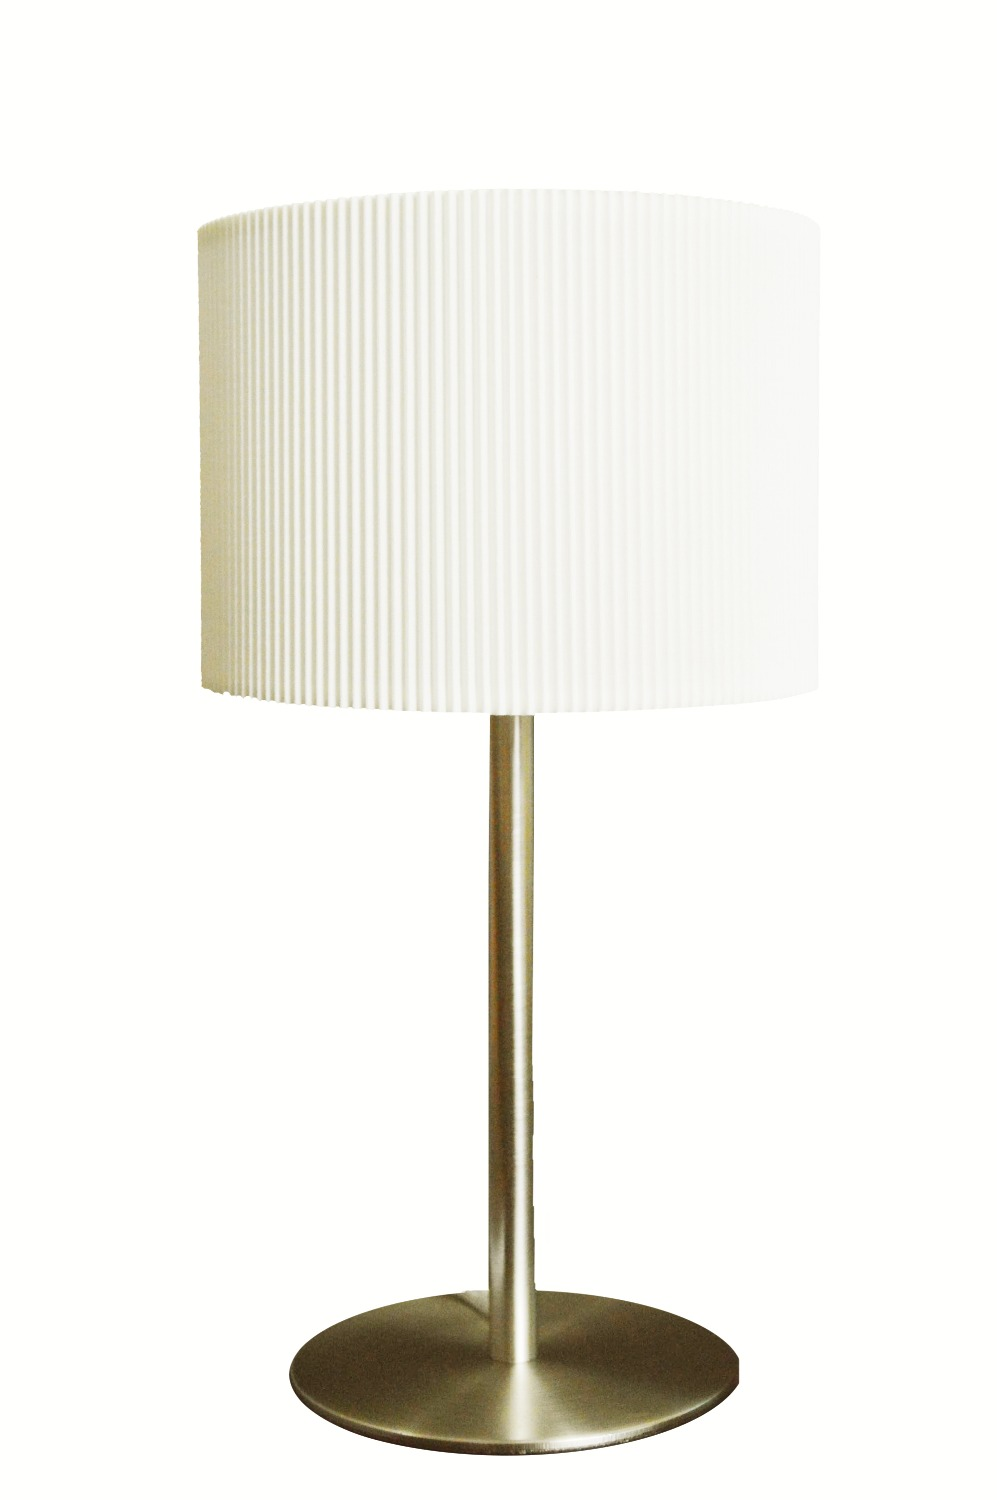 Small Lamps For Bedroom Online Buy Wholesale Small Bedroom Lamps From China Small Bedroom